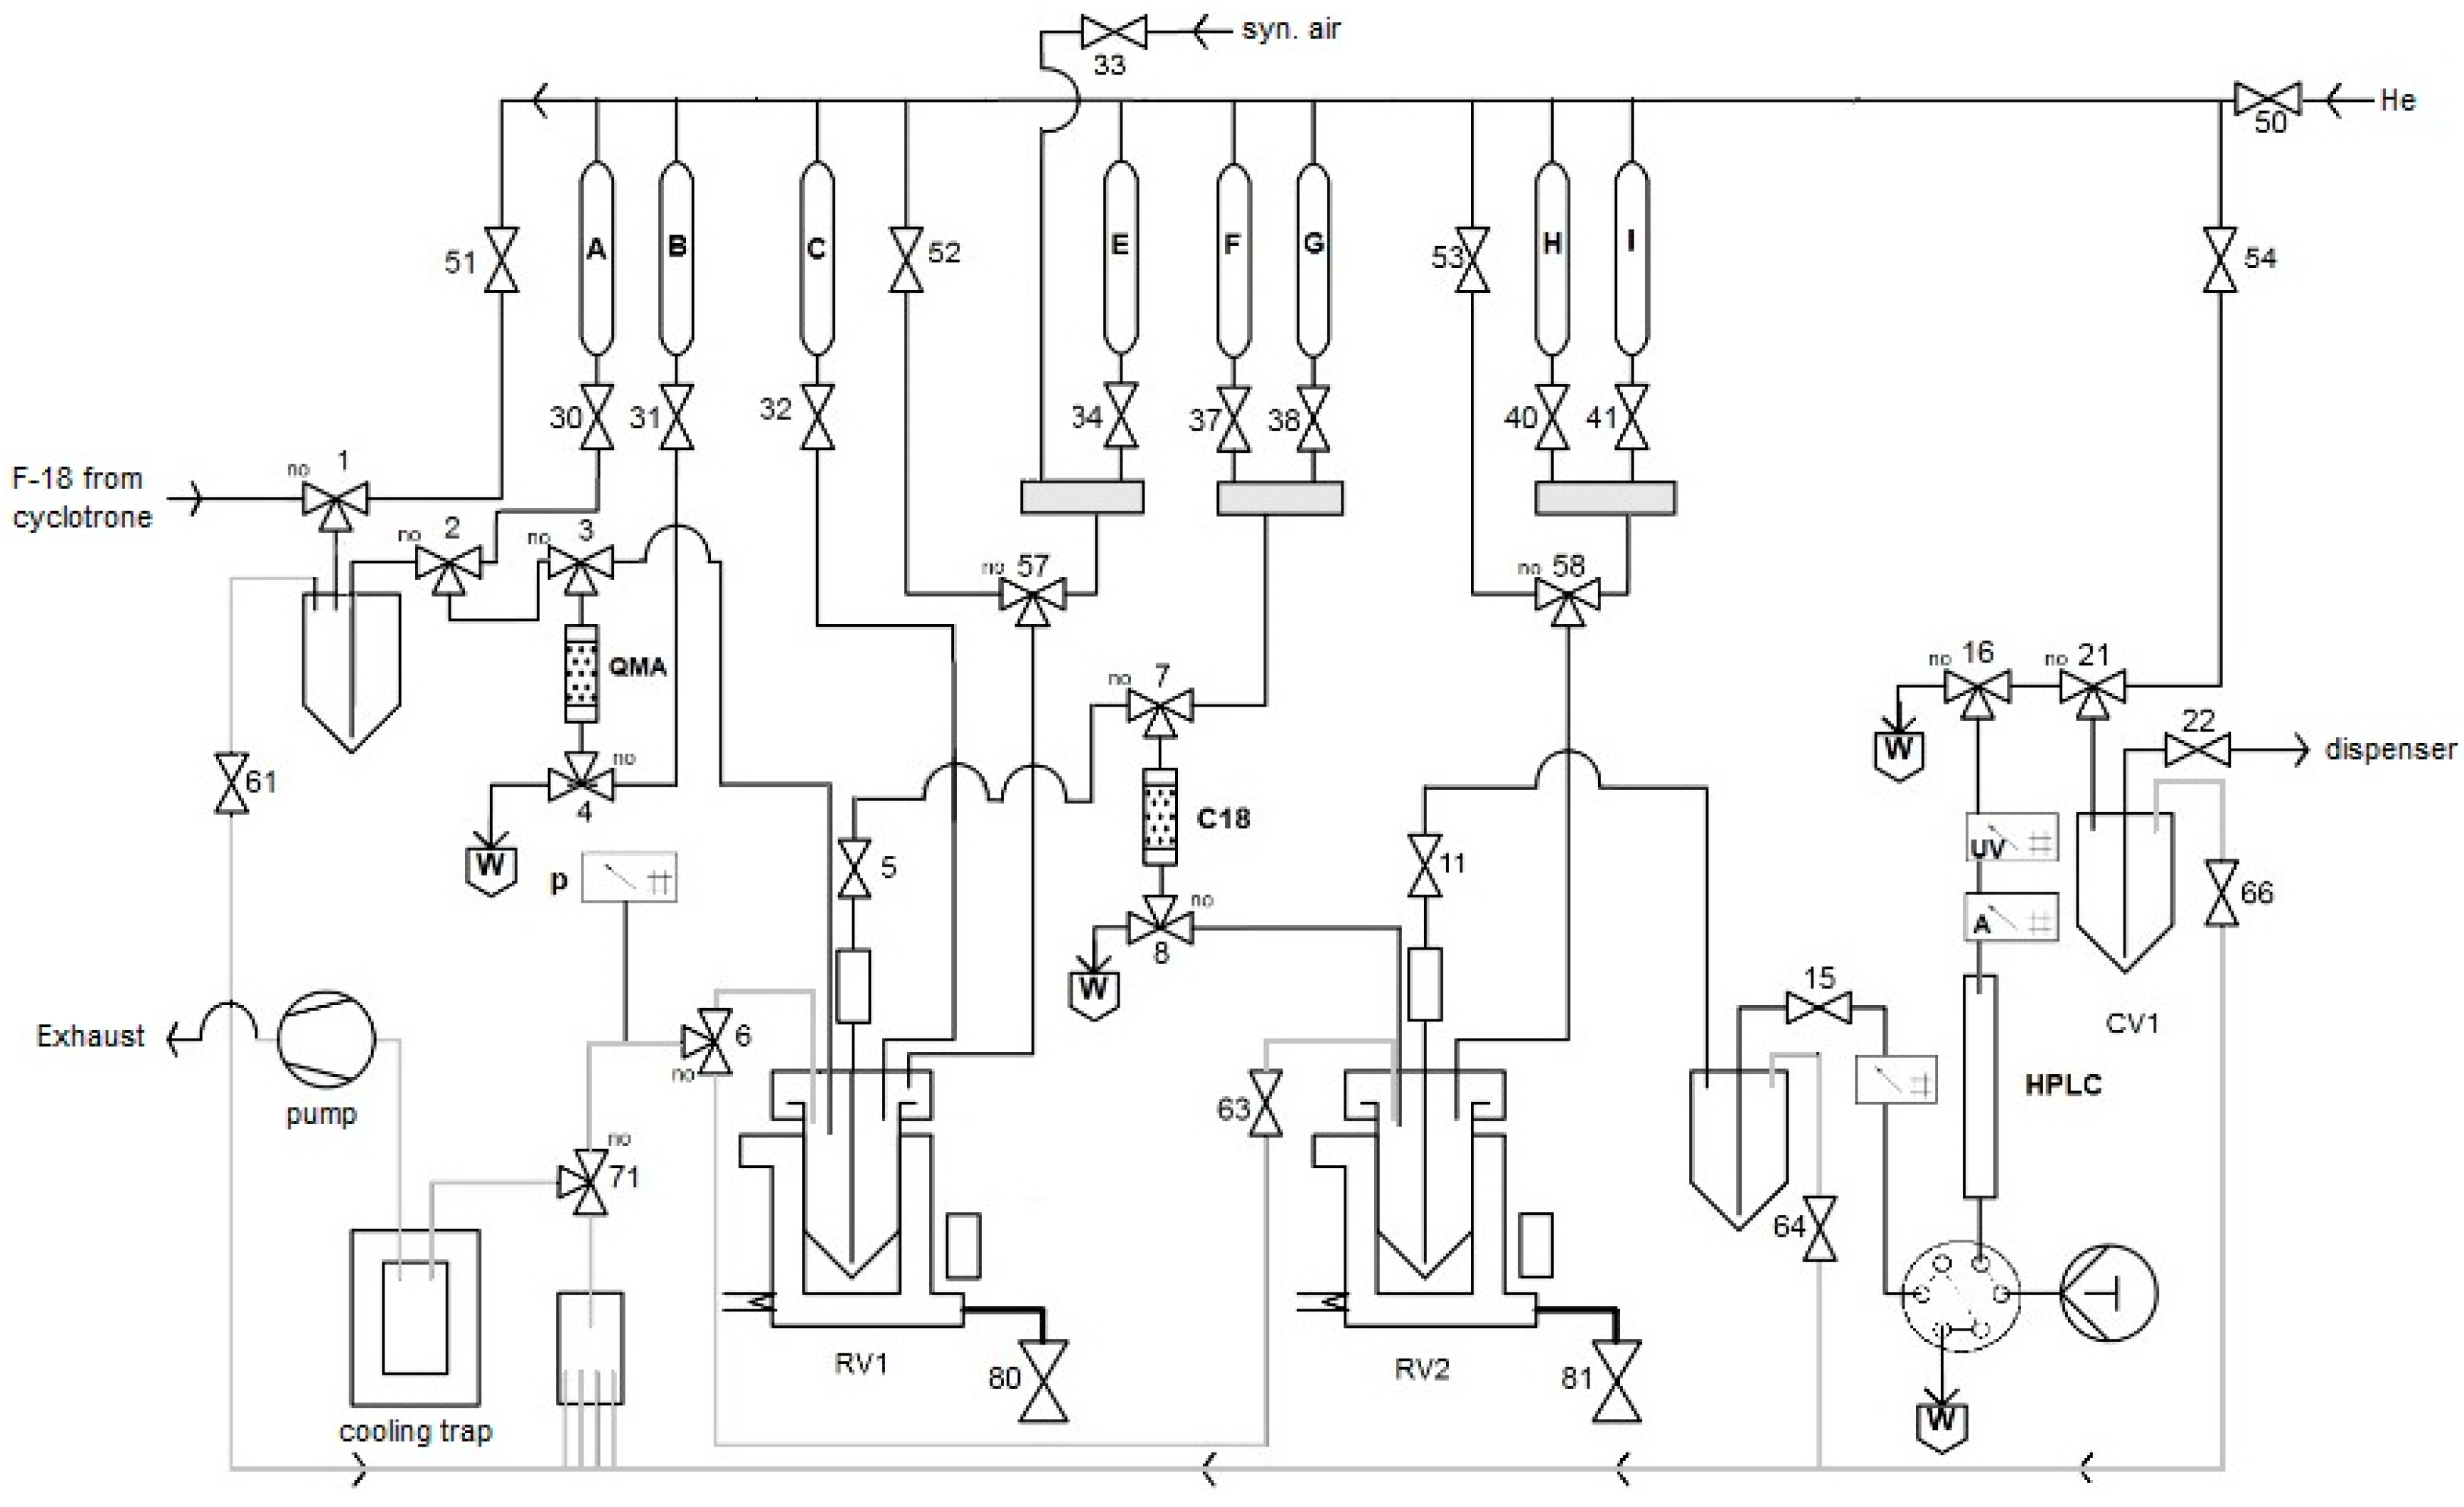 Molecules Free Full Text A Practical Method For The Preparation Process Flow Diagram Pfd No